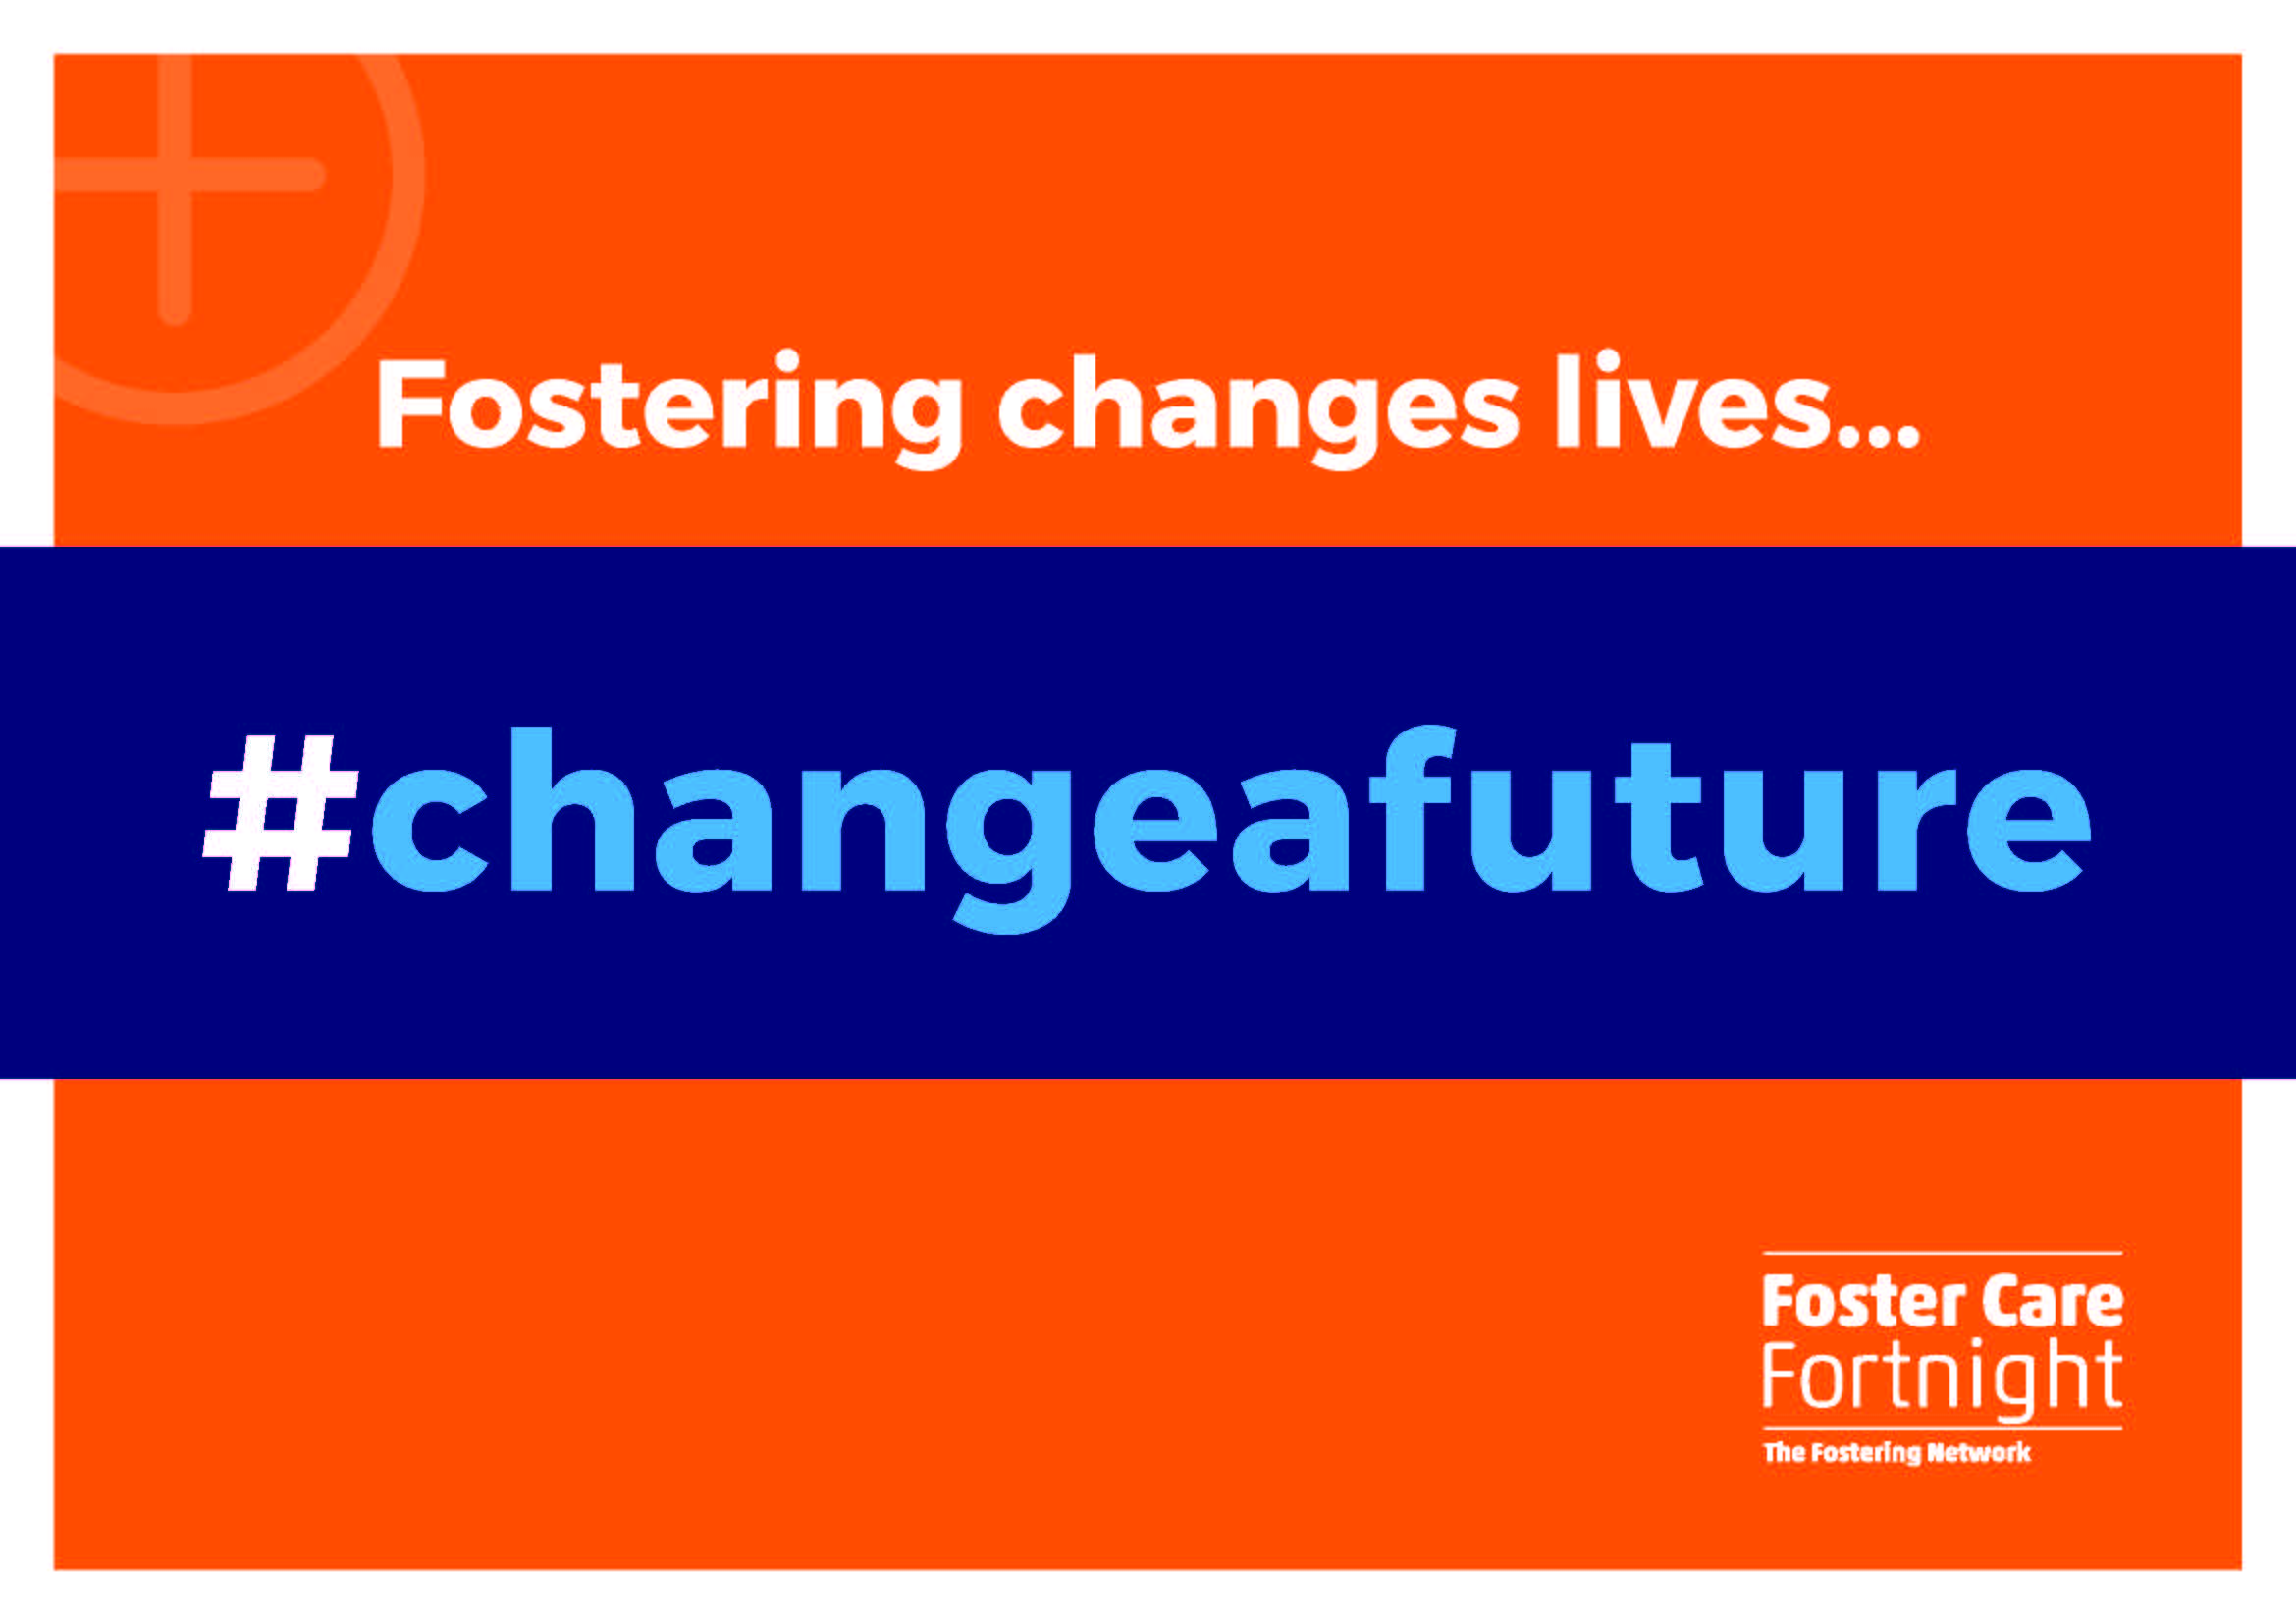 Fostering changes lives graphic